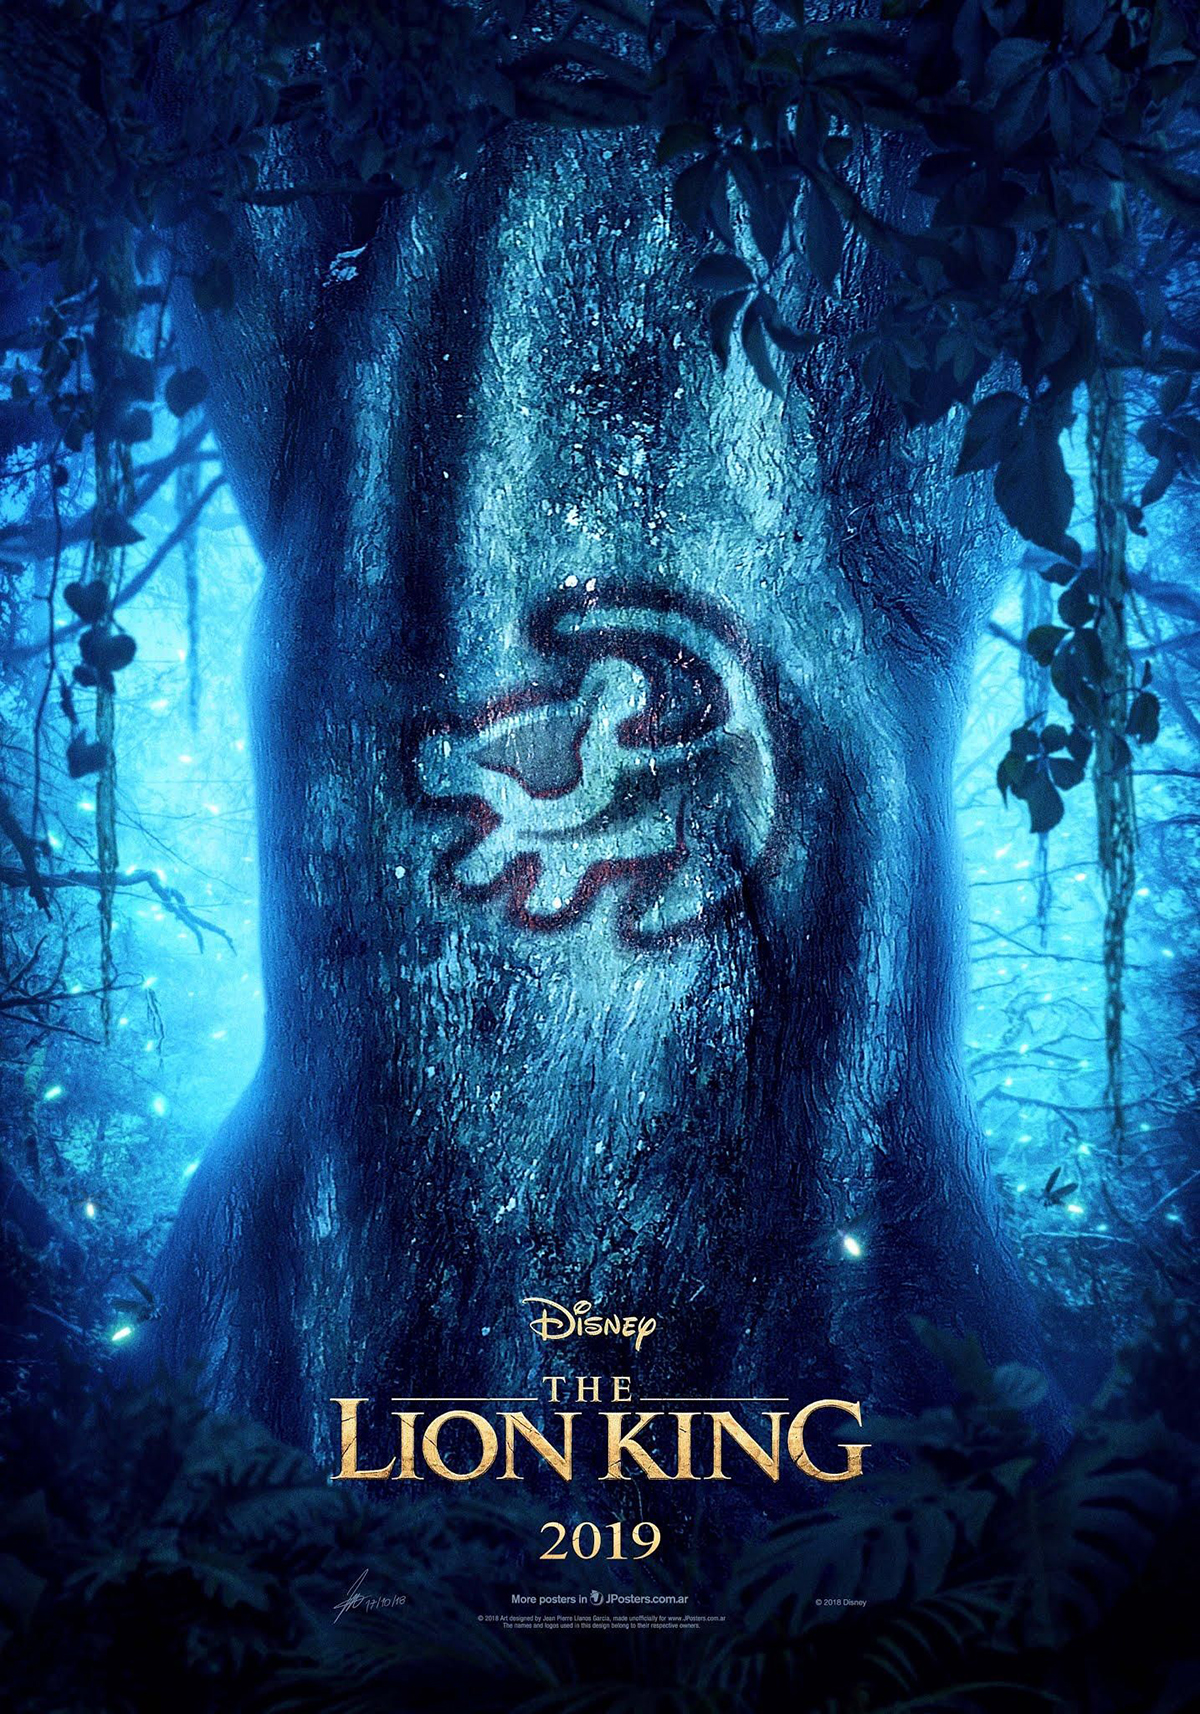 the lion king 2019 release date philippines